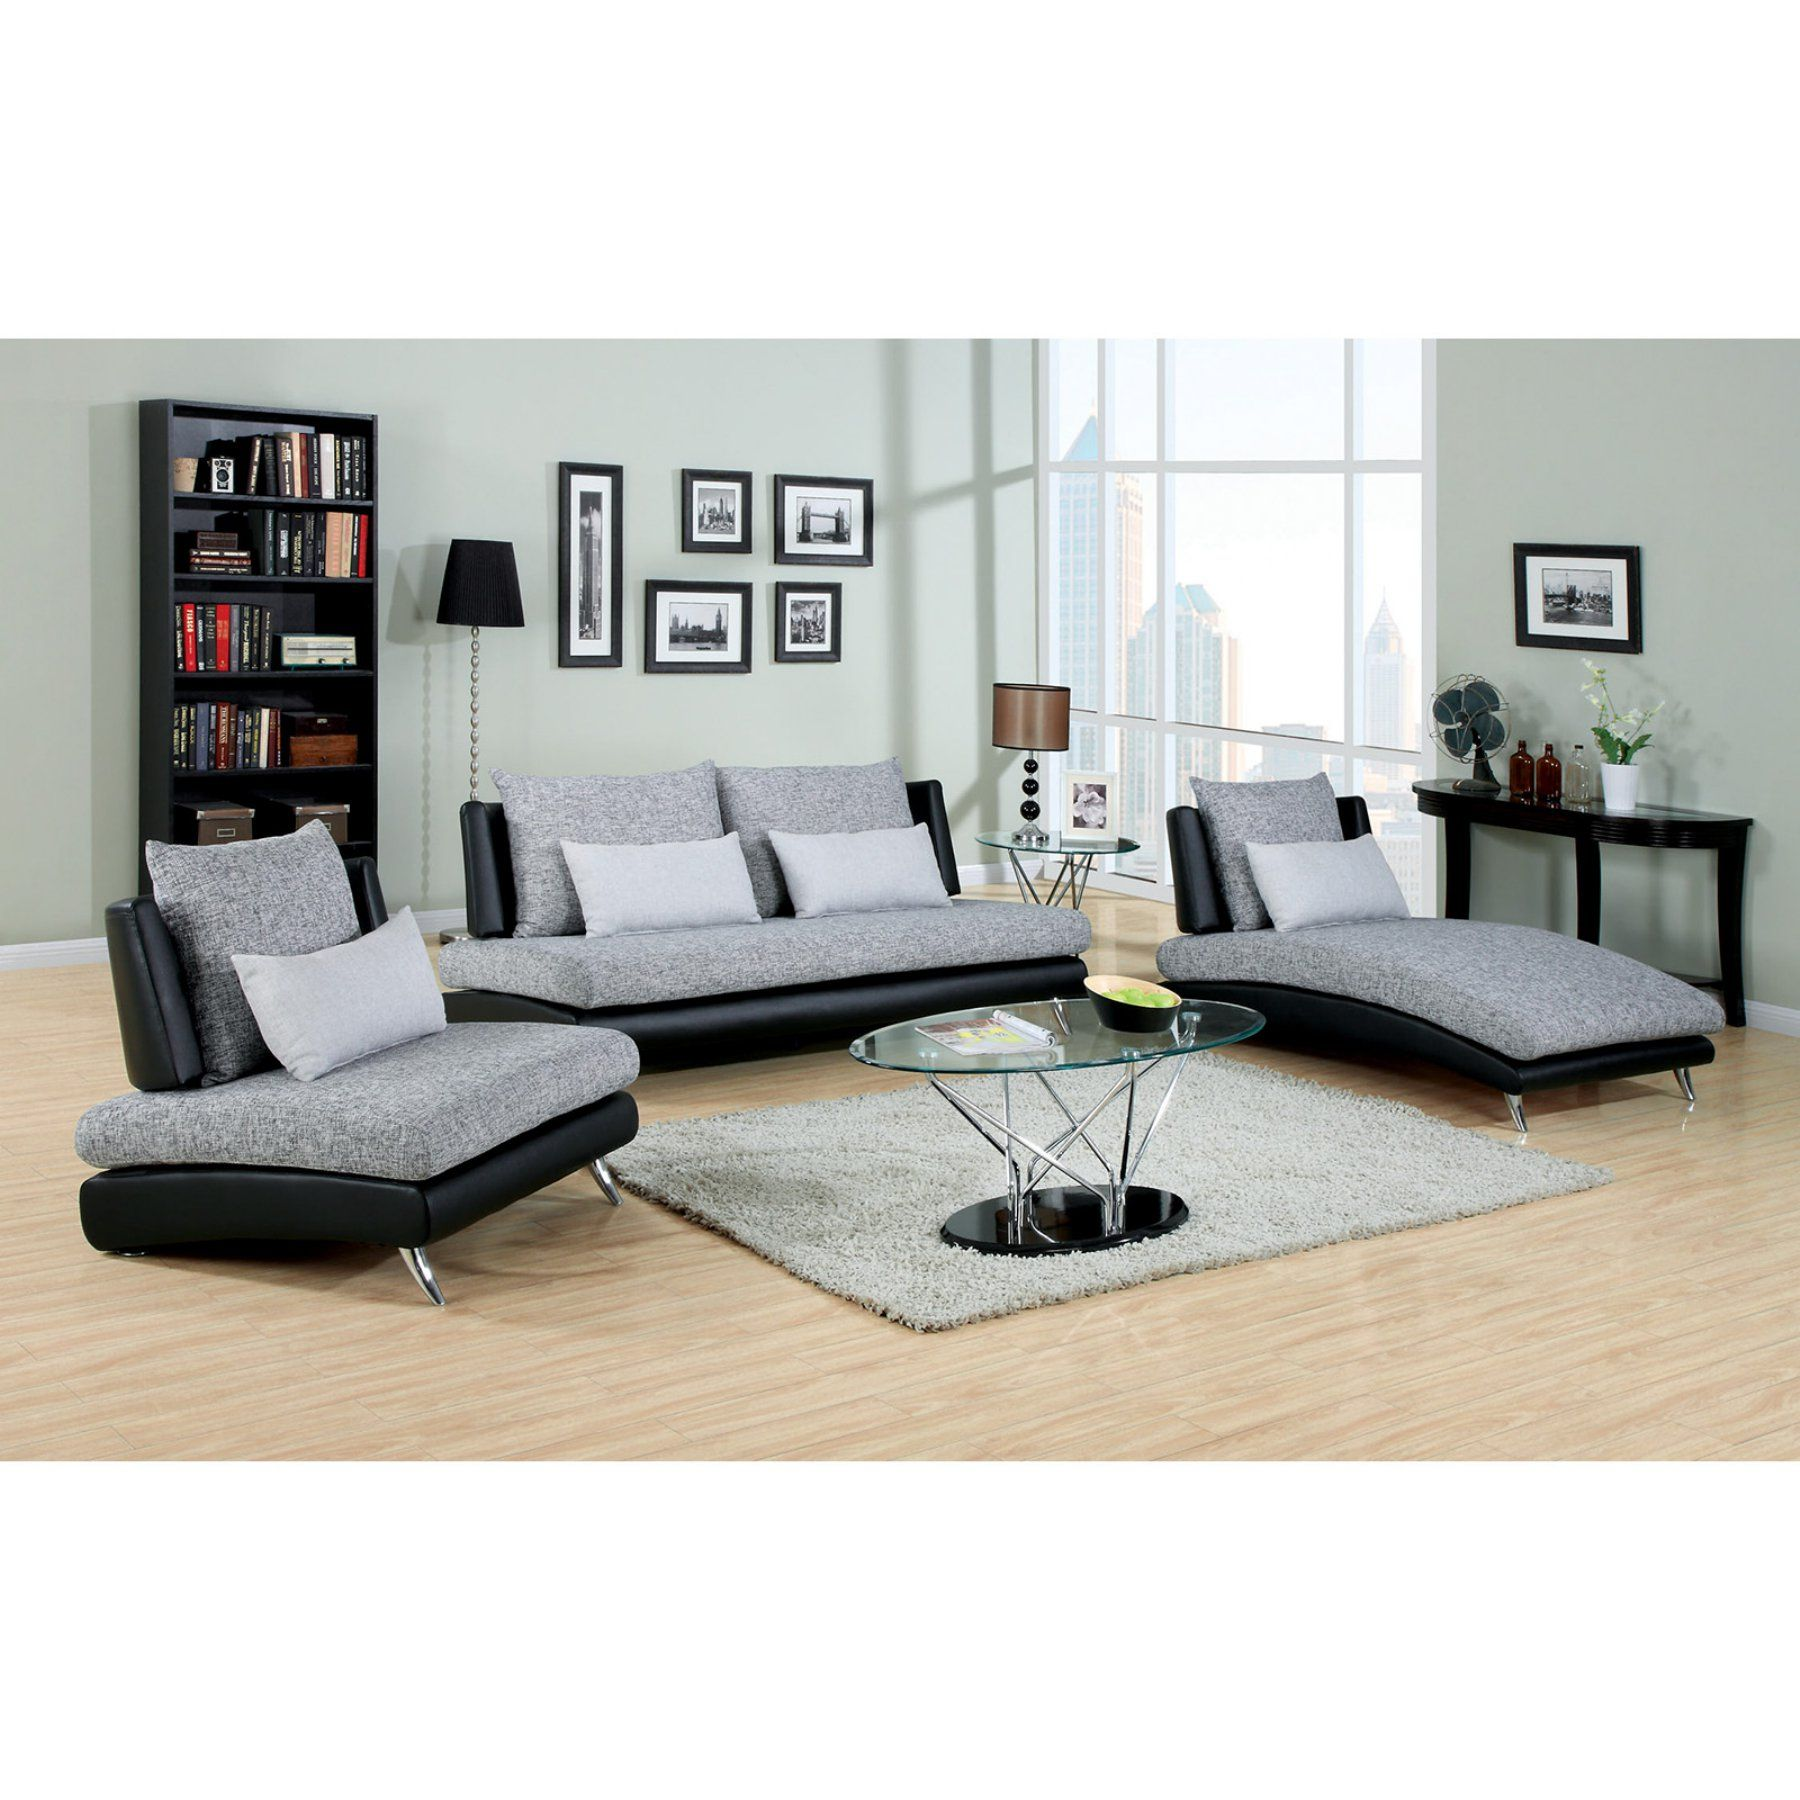 black leather living room furniture sets%0A Furniture of America Cole  Piece Fabric and Faux Leather Sofa Set  Gray